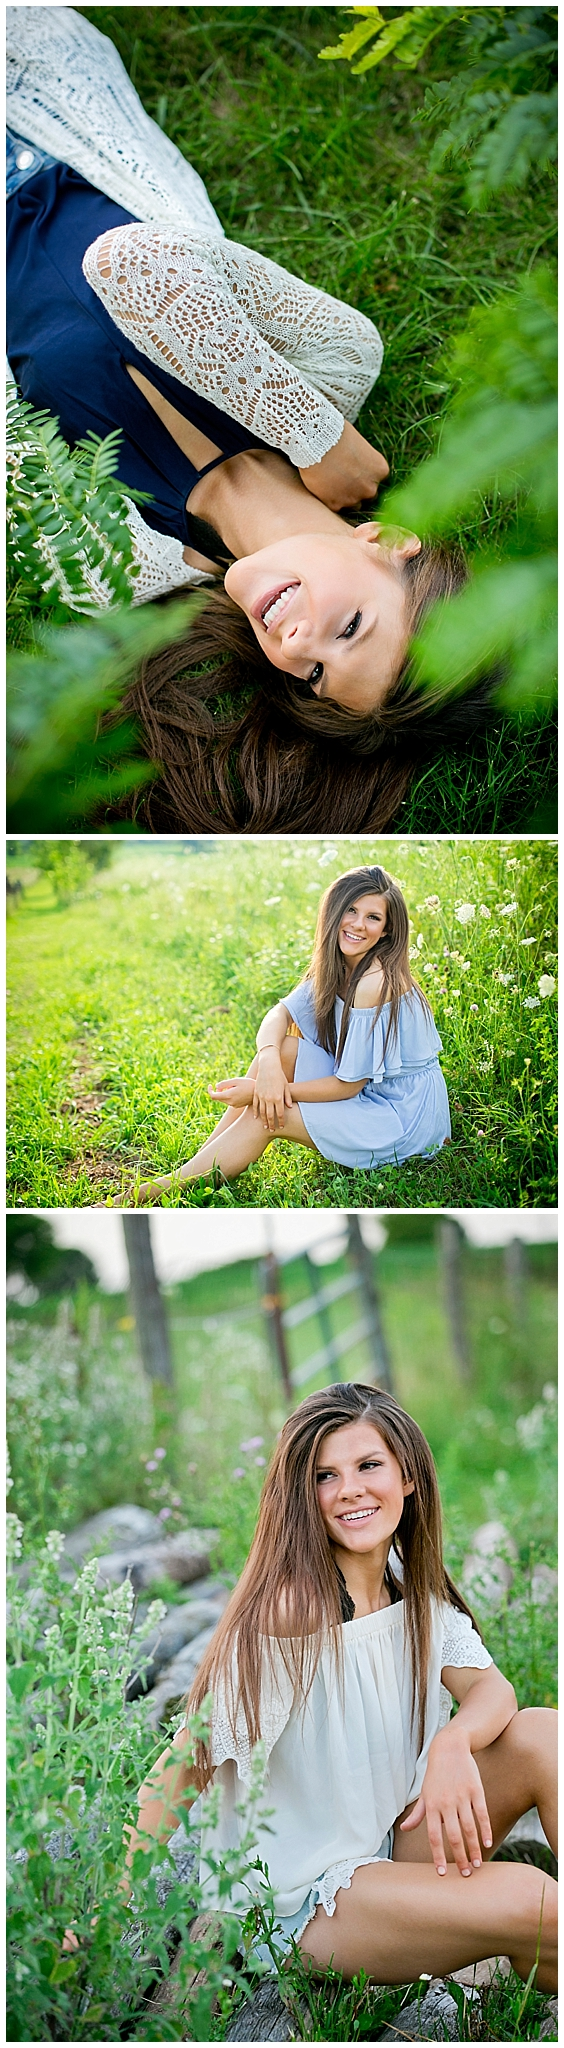 Kim-Thiel-Photography-cute senior pictures